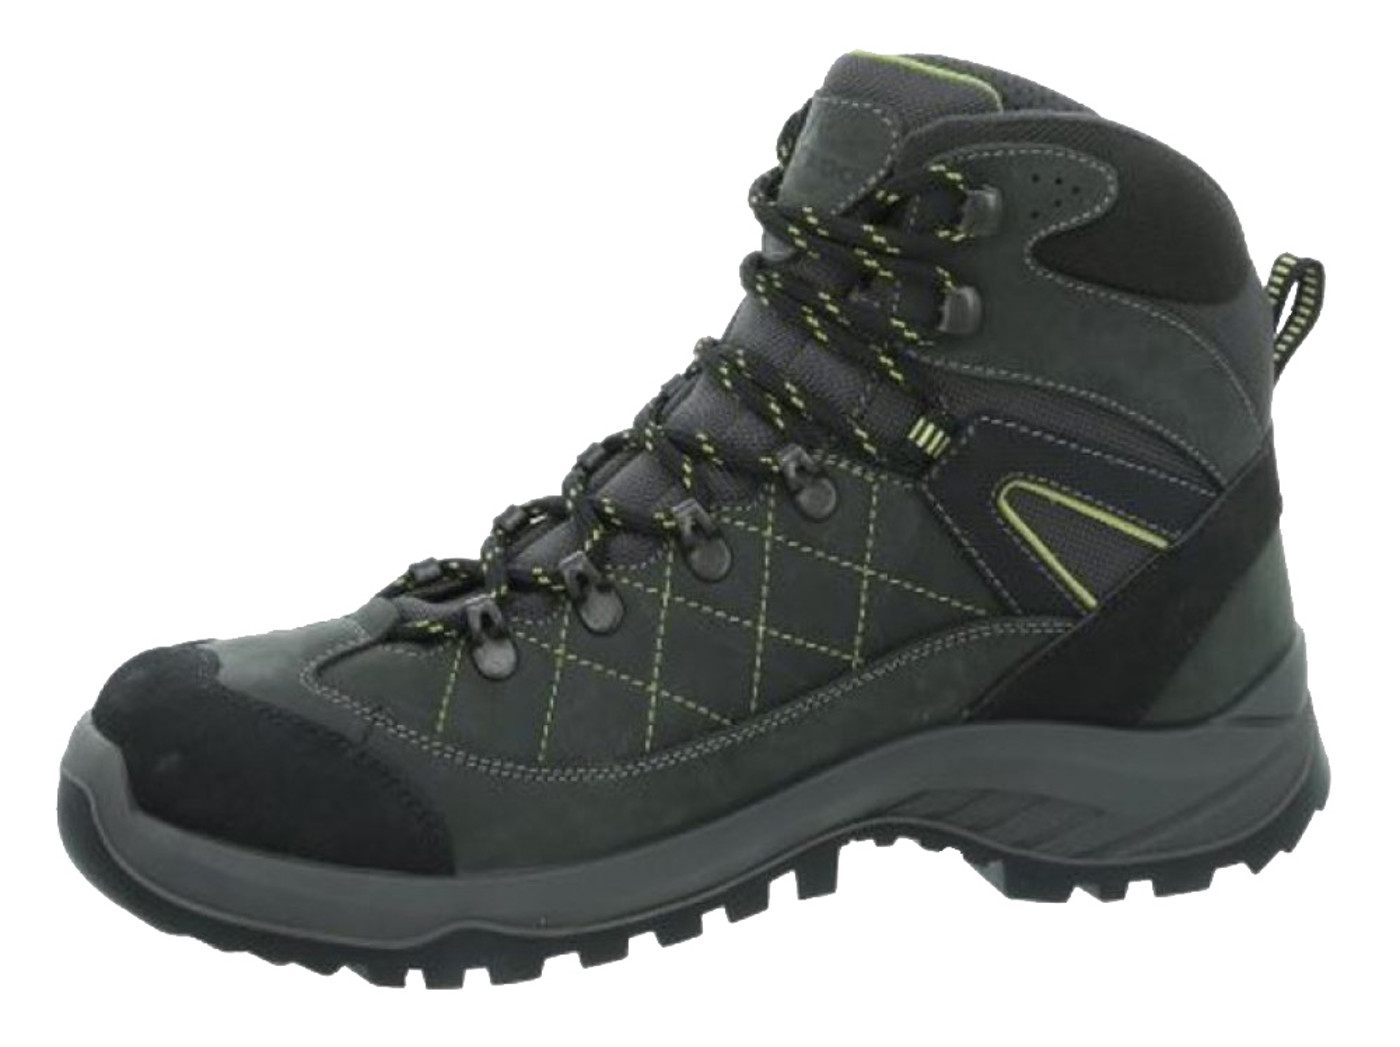 HIGH COLORADO AROSA VIBRAM MID UNISEX